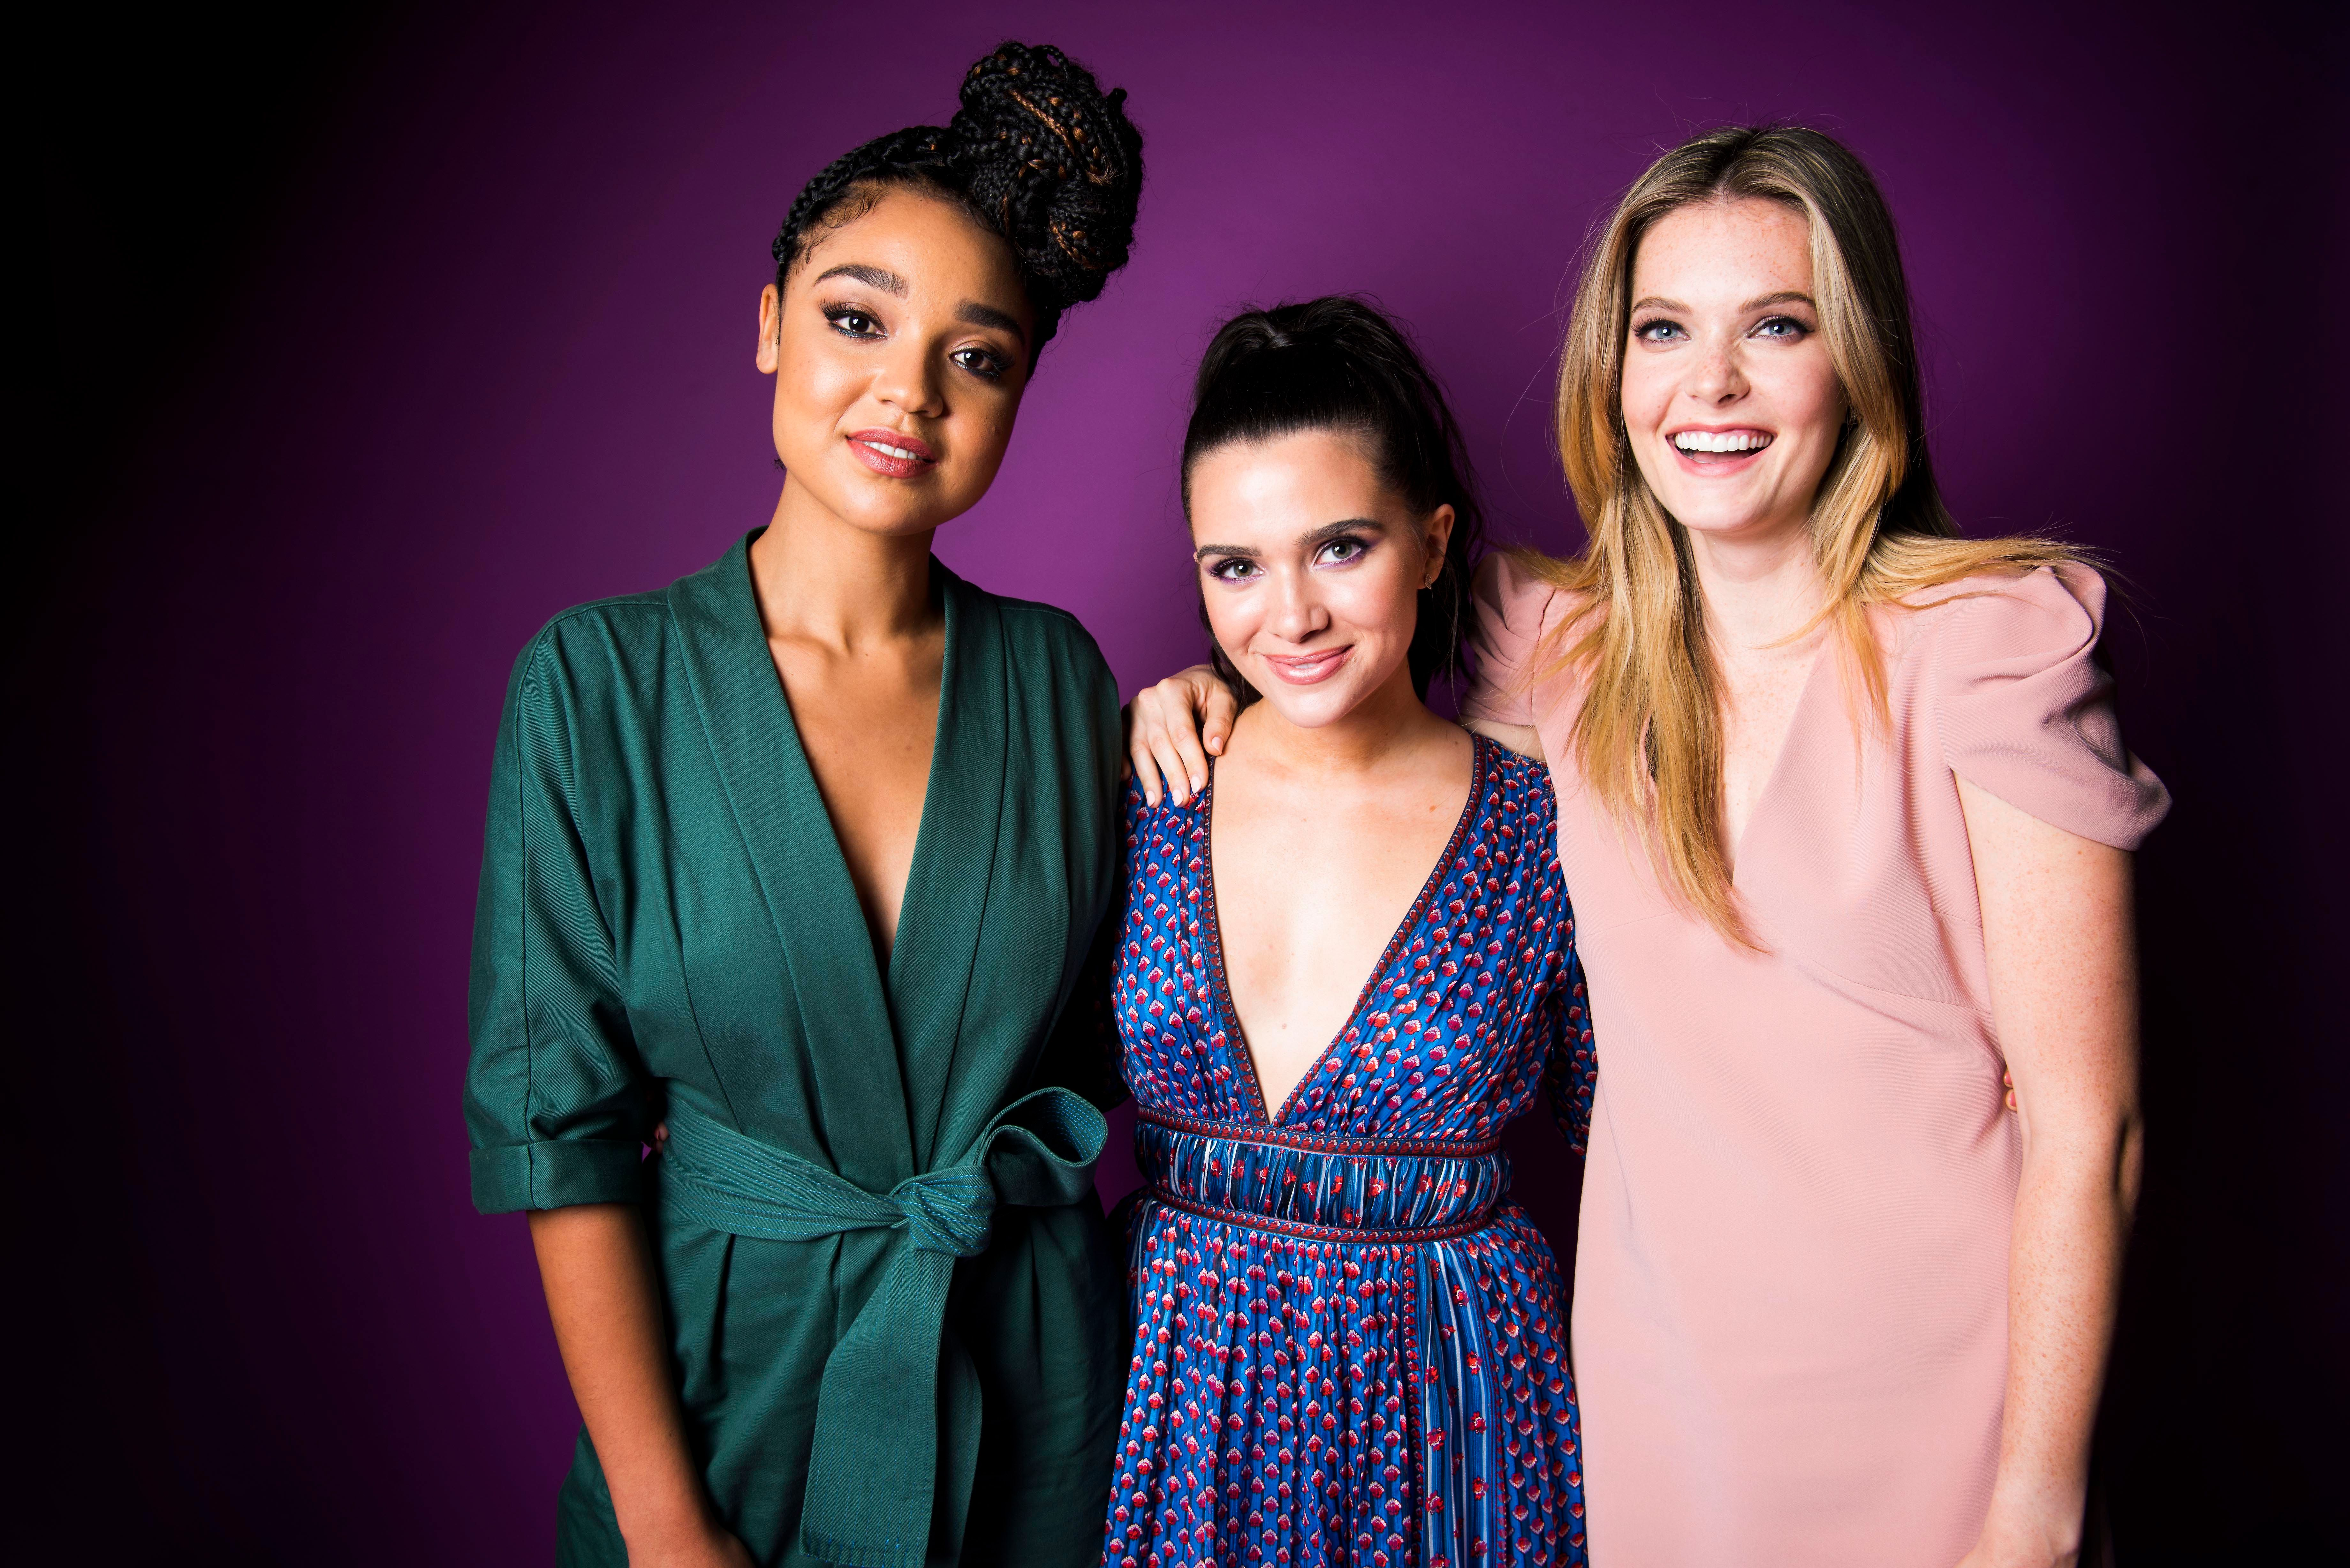 The Women Of 'The Bold Type' Visit A Real